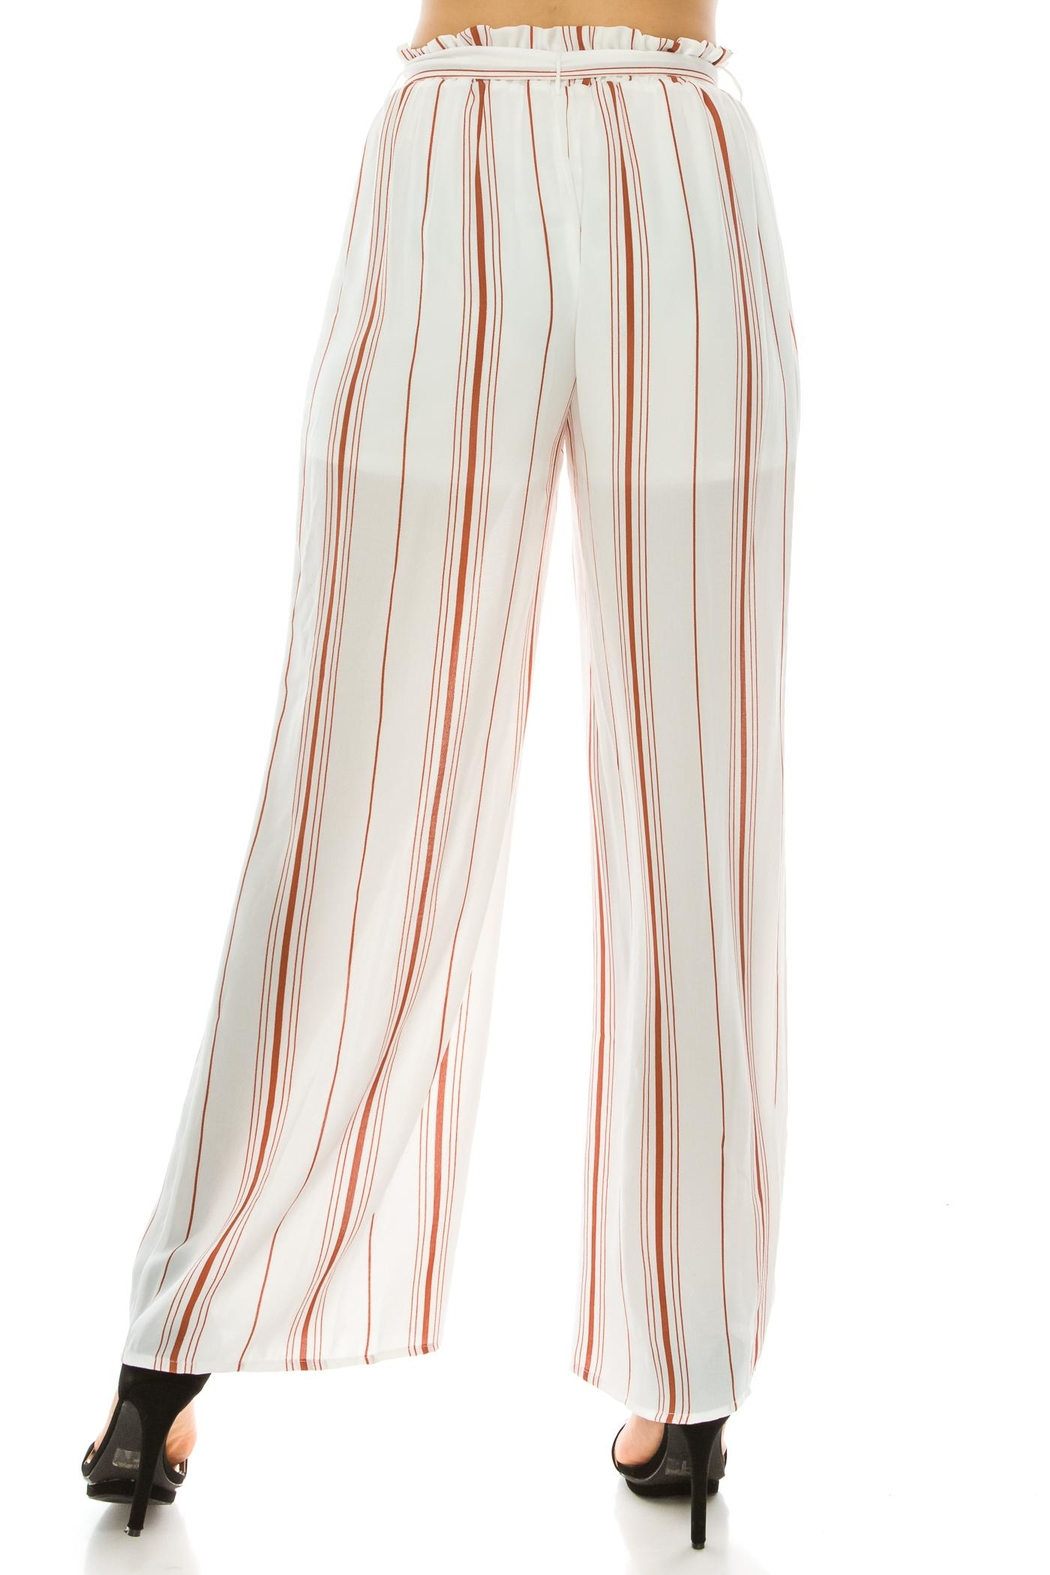 Favlux Stripe Tie Pants - Side Cropped Image